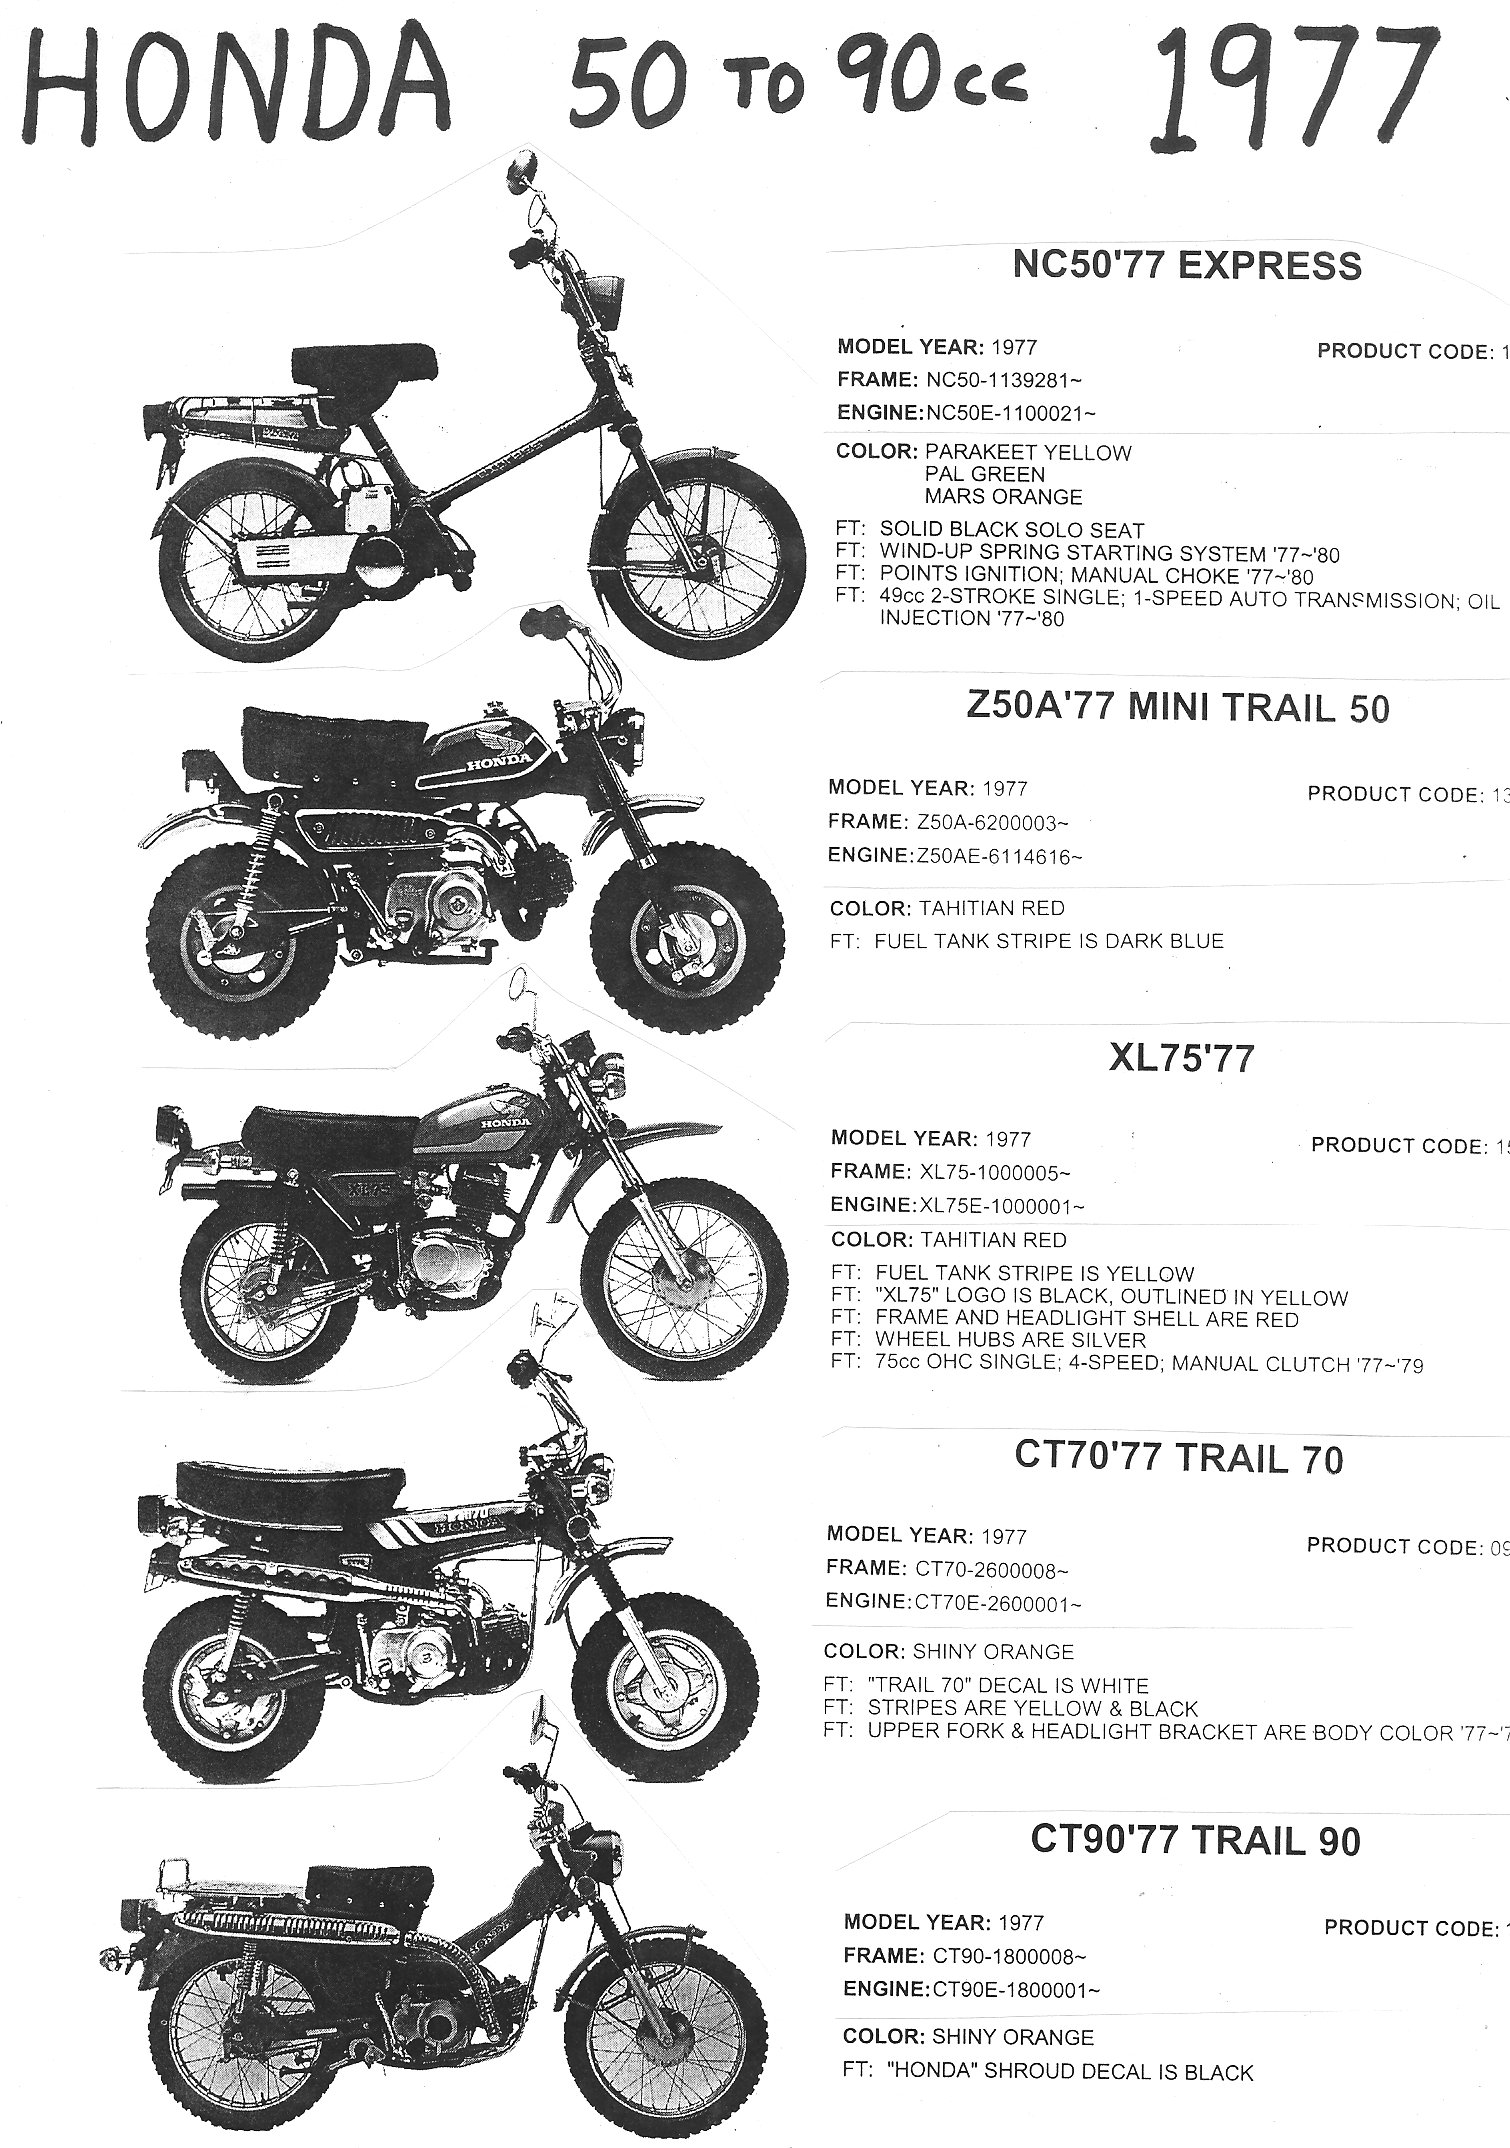 1975 Xl75 Wiring Diagram cb750 simplified wiring harness ... Honda Ct Wiring Diagram on honda ct70 parts diagram, honda ct70 engine, honda ct70 cylinder head, honda ct70 flywheel, honda ct70 specifications, trail 90 wiring diagram, honda ct70 headlight, saab 9-7x wiring diagram, honda ct70 mini trail, honda ct70 fuel tank, honda ct70 air cleaner, honda ct70 exhaust, honda trail 70 carburetor diagram, honda ct70 parts catalog, honda motorcycle wiring schematics, honda ct70 turn signals, honda ct70 frame, saturn l-series wiring diagram, honda ct70 tires, honda ct70 carb diagram,